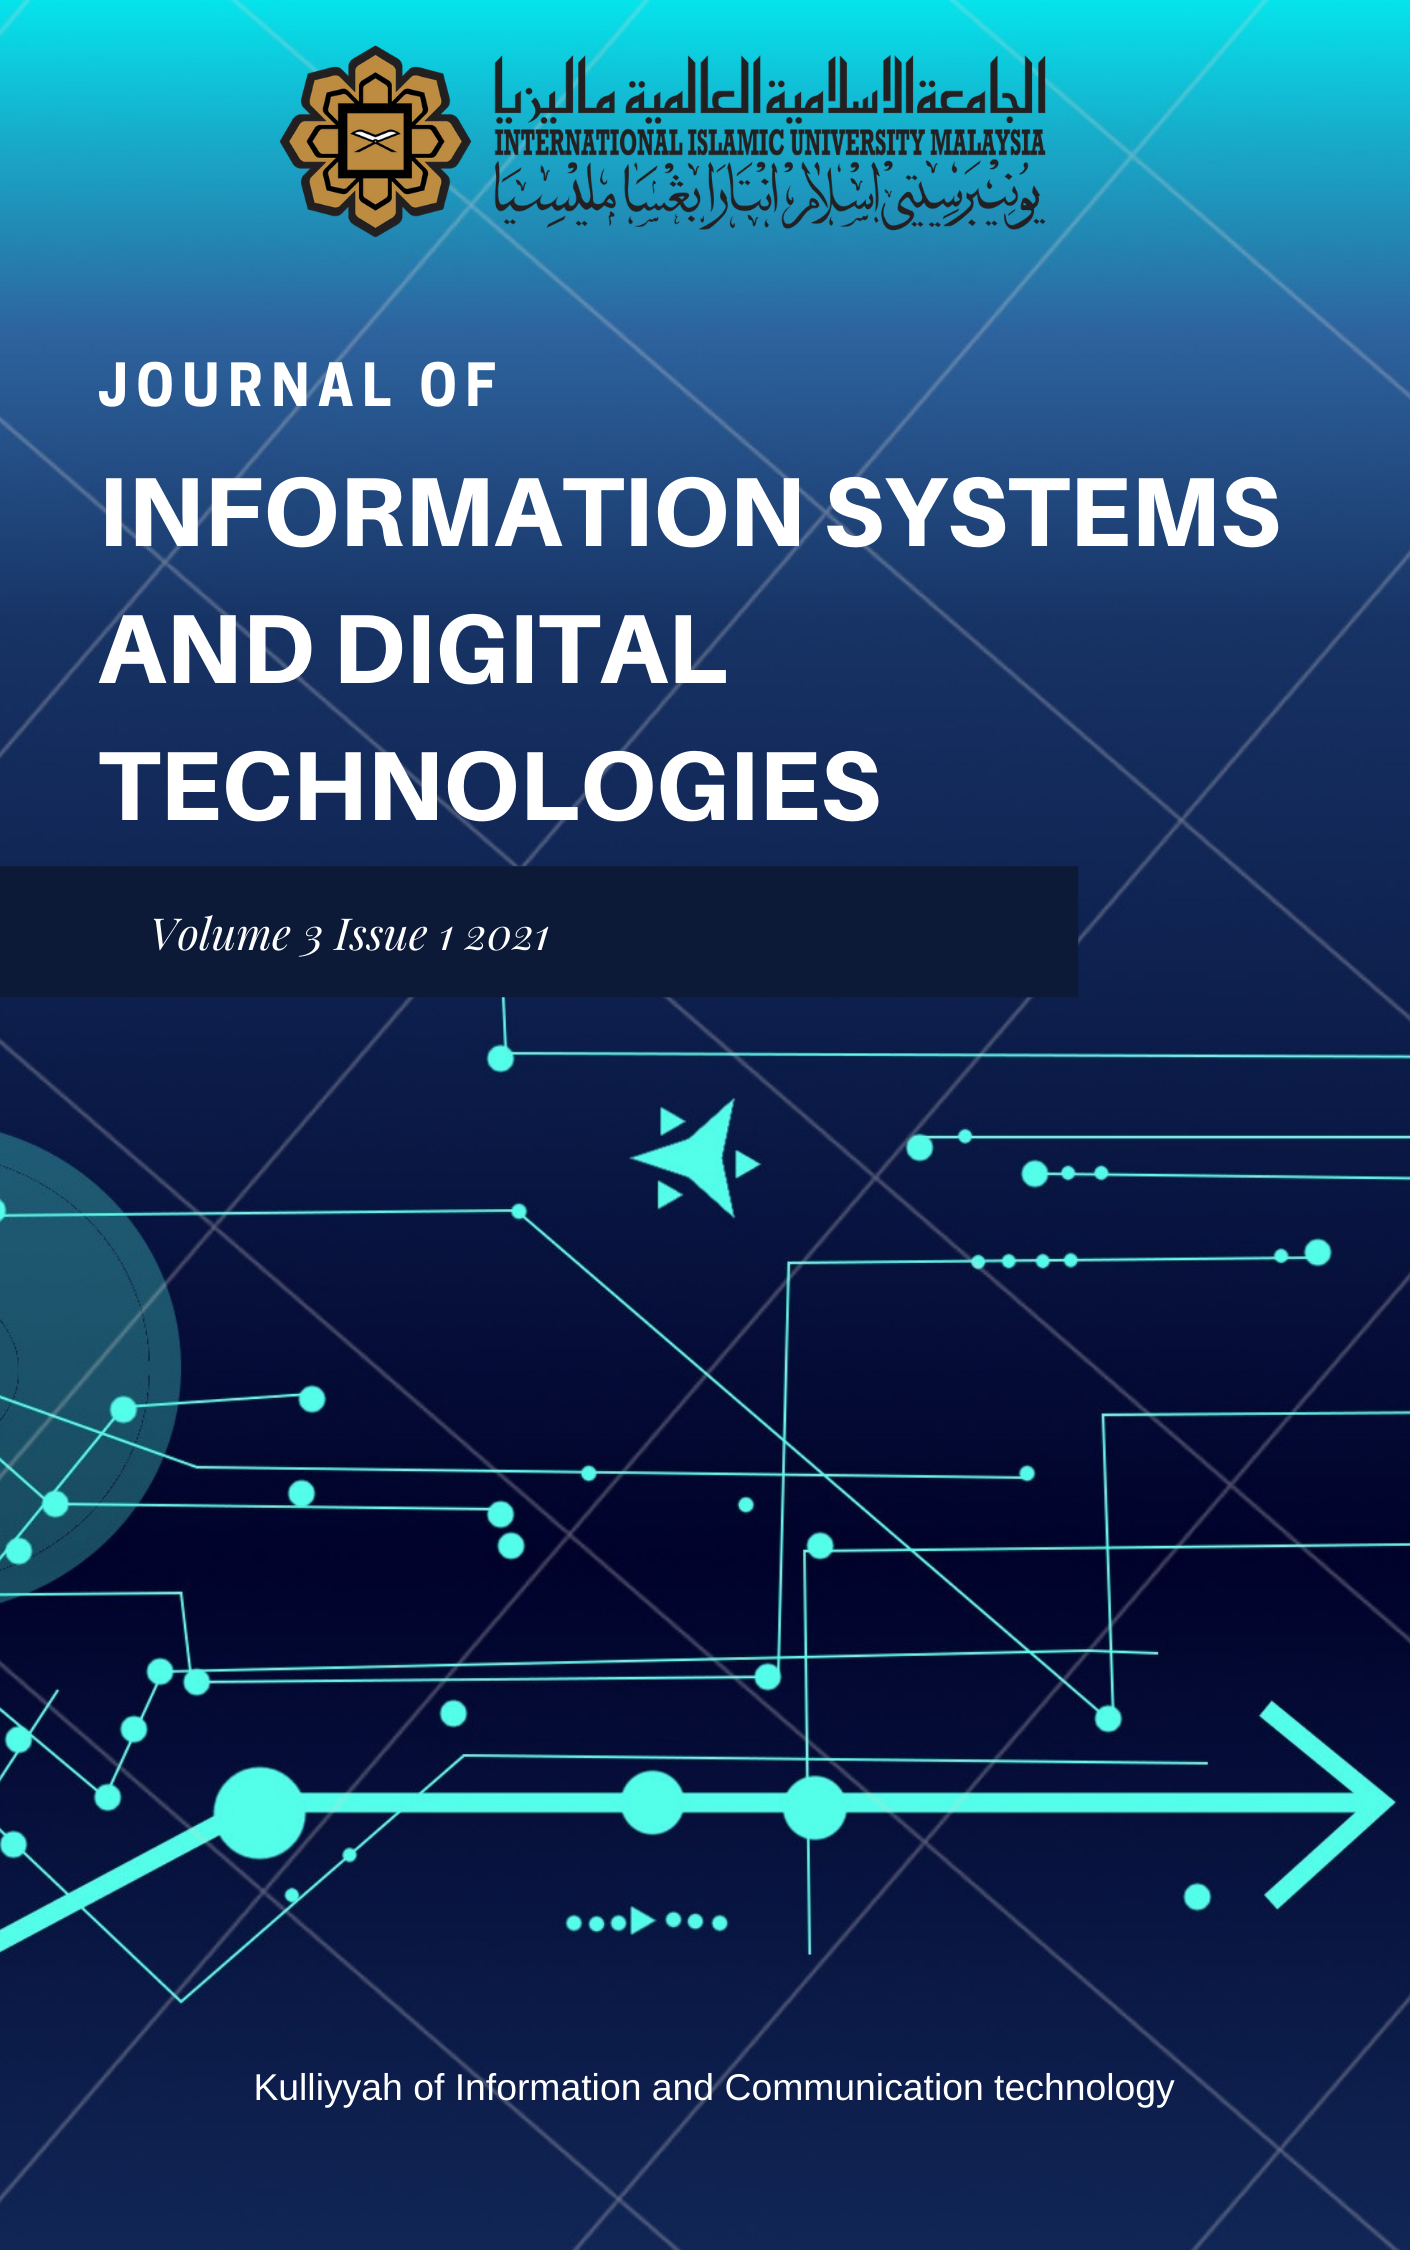 View Vol. 3 No. 1 (2021): Journal of Information Systems and Digital Technologies